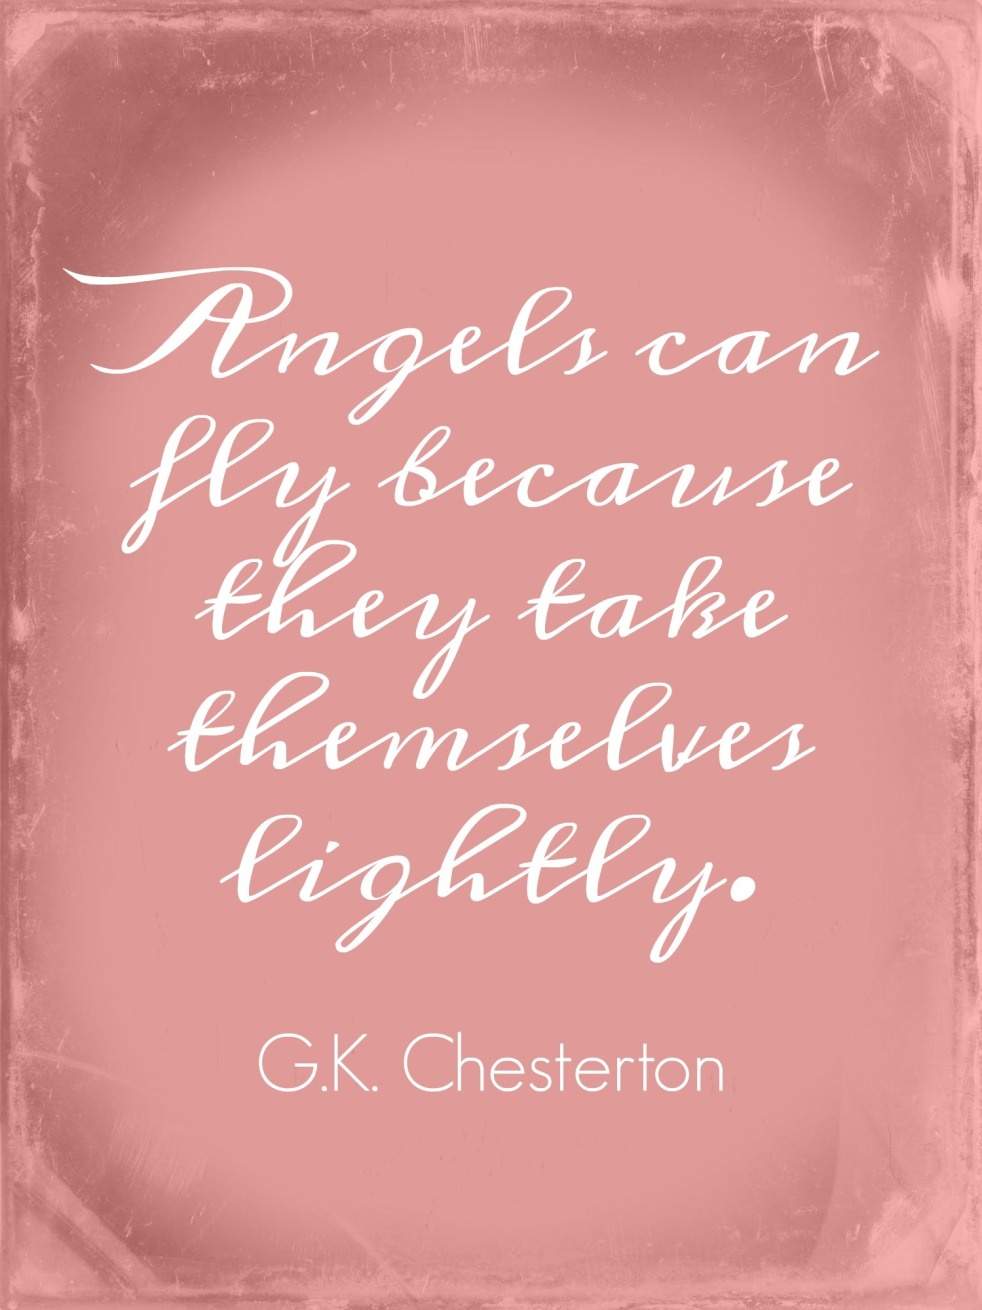 angels-can-fly